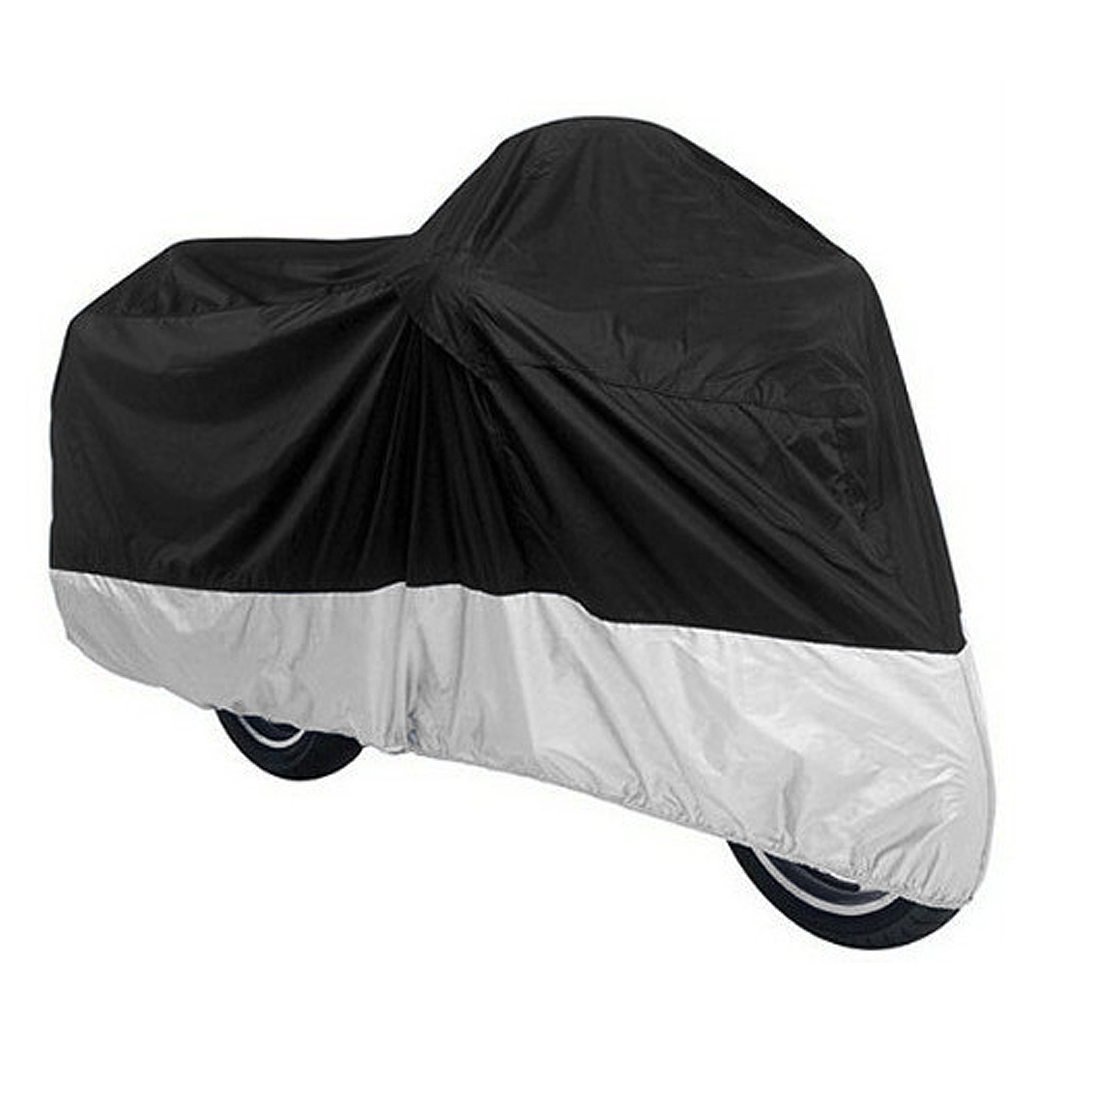 Silver Tone Black Motorcycle 190T Rain Resistant Protective Cover 245cm Long